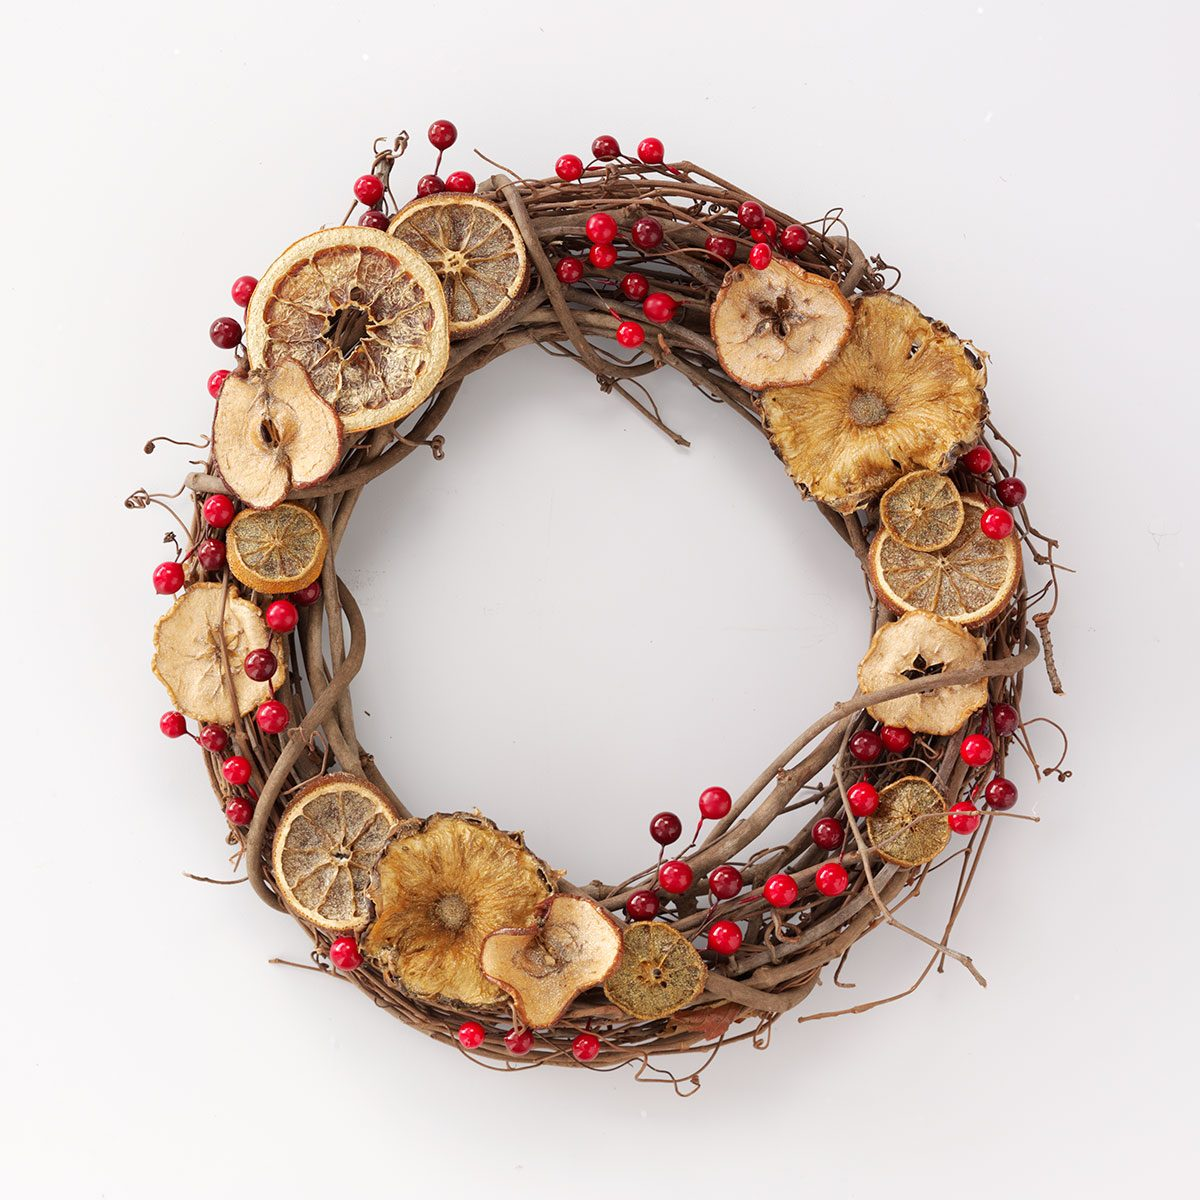 Citrus and Cranberry Wreath